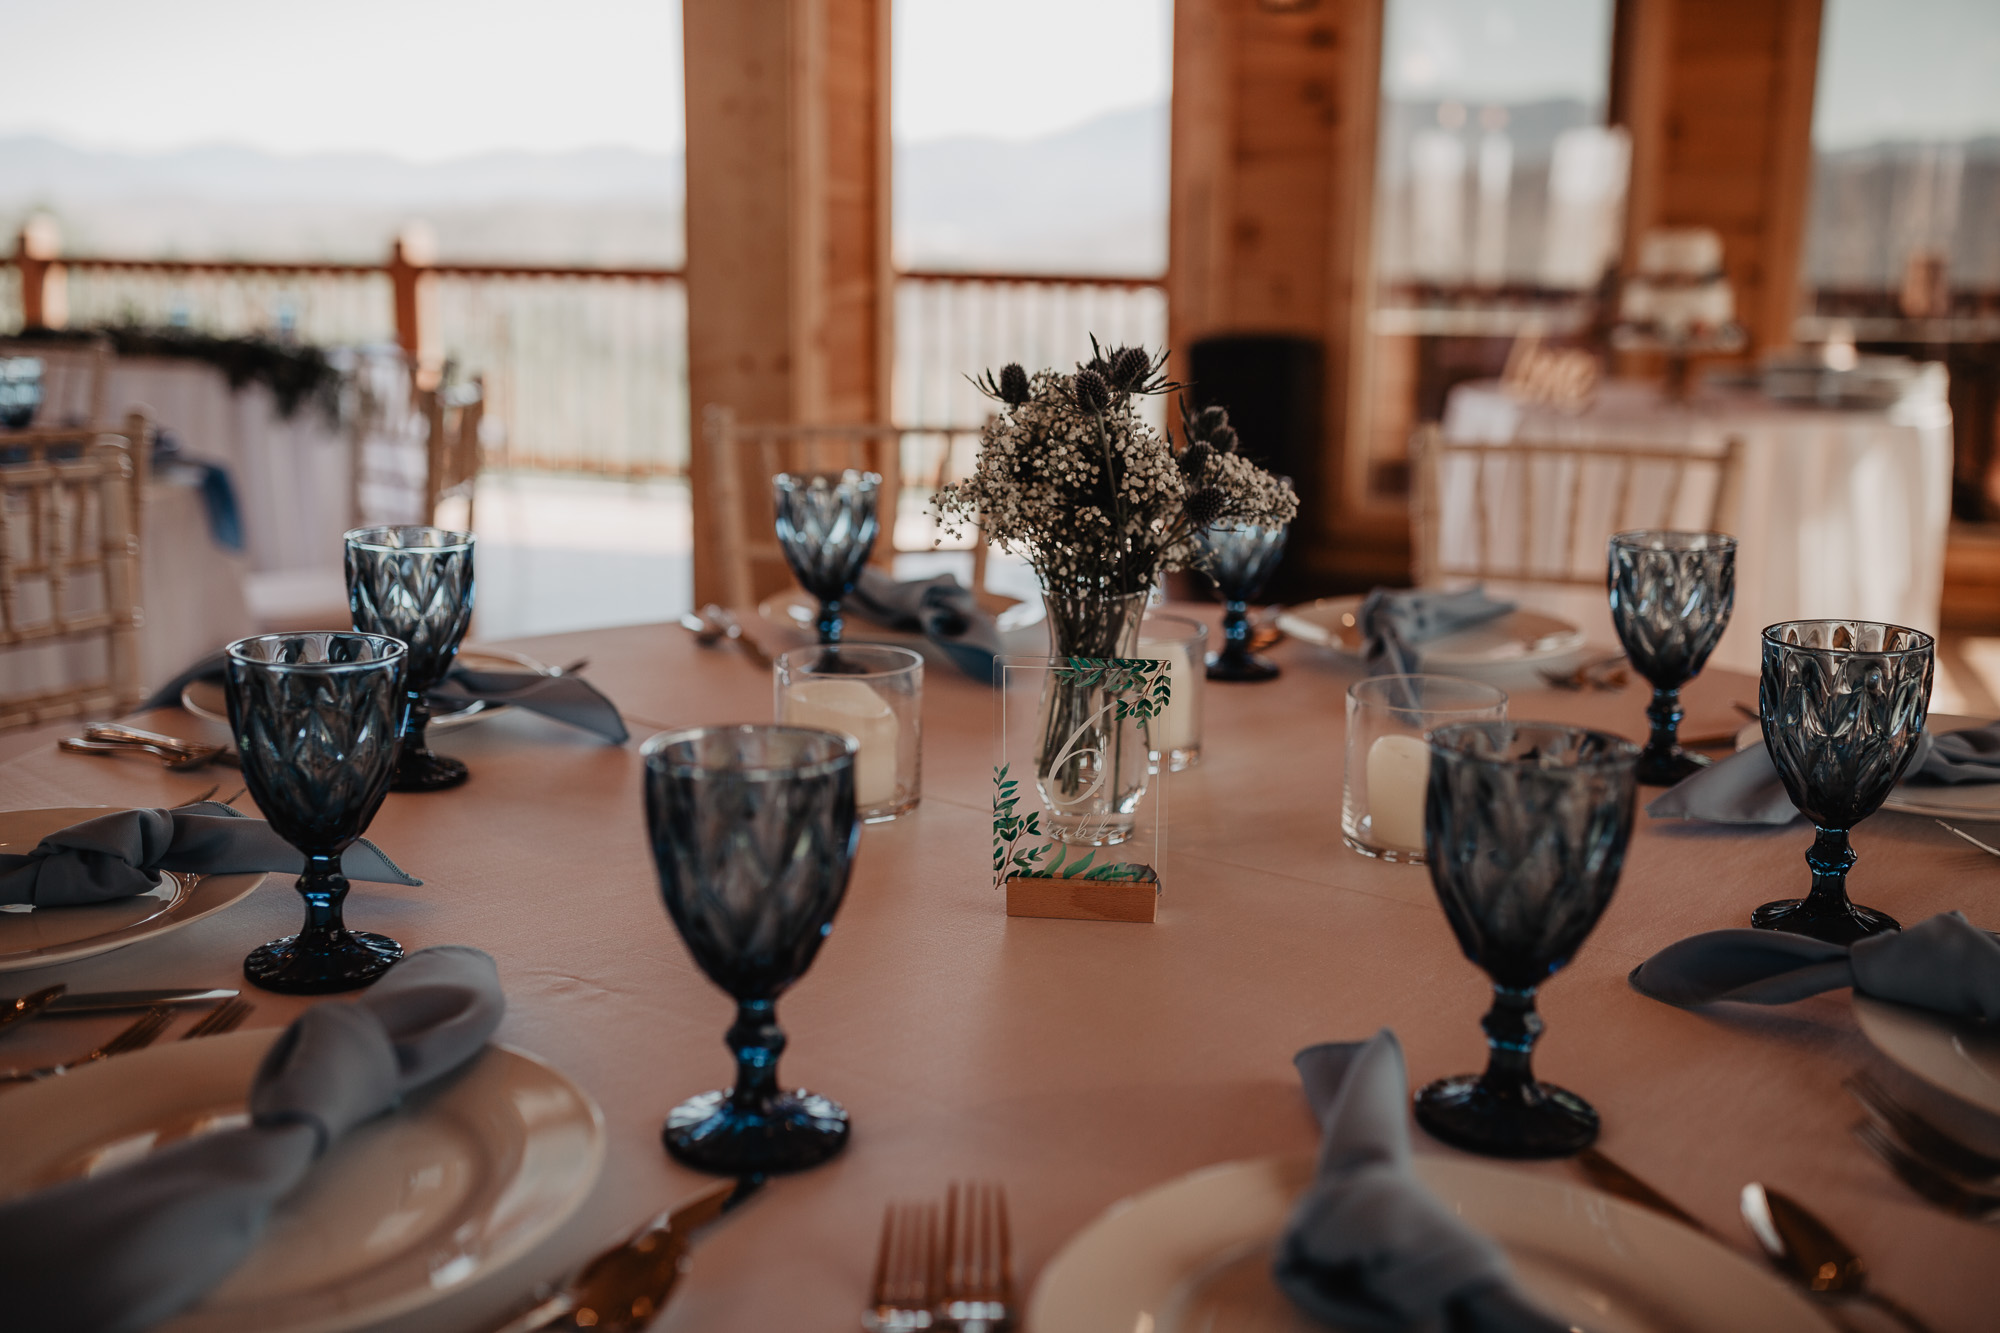 Destination Wedding at The Magnolia venue in the Smoky Mountains | Magnolia + Ember